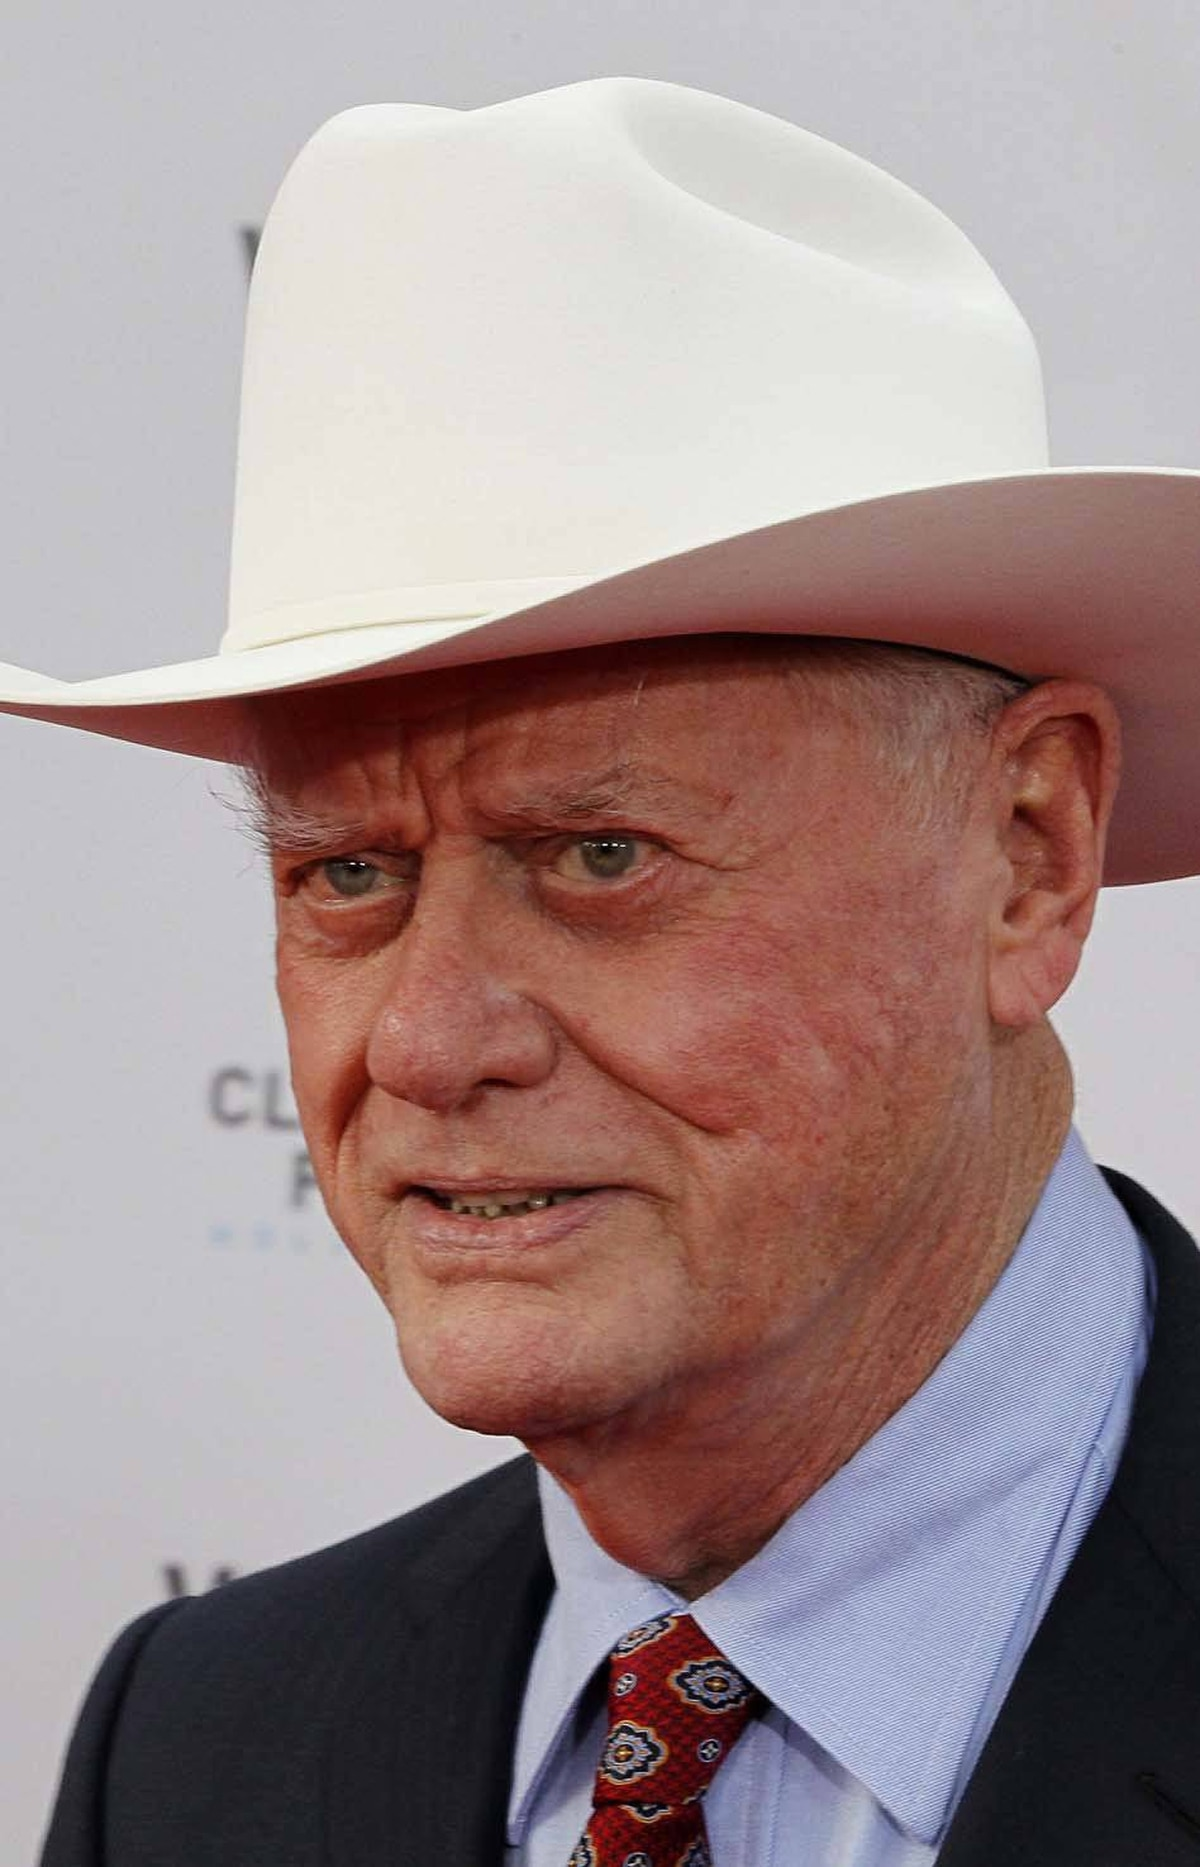 "NEW GAME THIS WEEK!! We introduce a new in-gallery game this week called ""Live? Or hologram!"" We run a photo of a celebrity and you tell us whether they are actually alive or present only as a high-tech hologram image. No: 1: Larry Hagman at the world premiere of the 40th anniversary restoration of the film ""Cabaret"" during the opening night gala of the 2012 TCM Classic Film Festival in Hollywood last week. [Answer: live]"